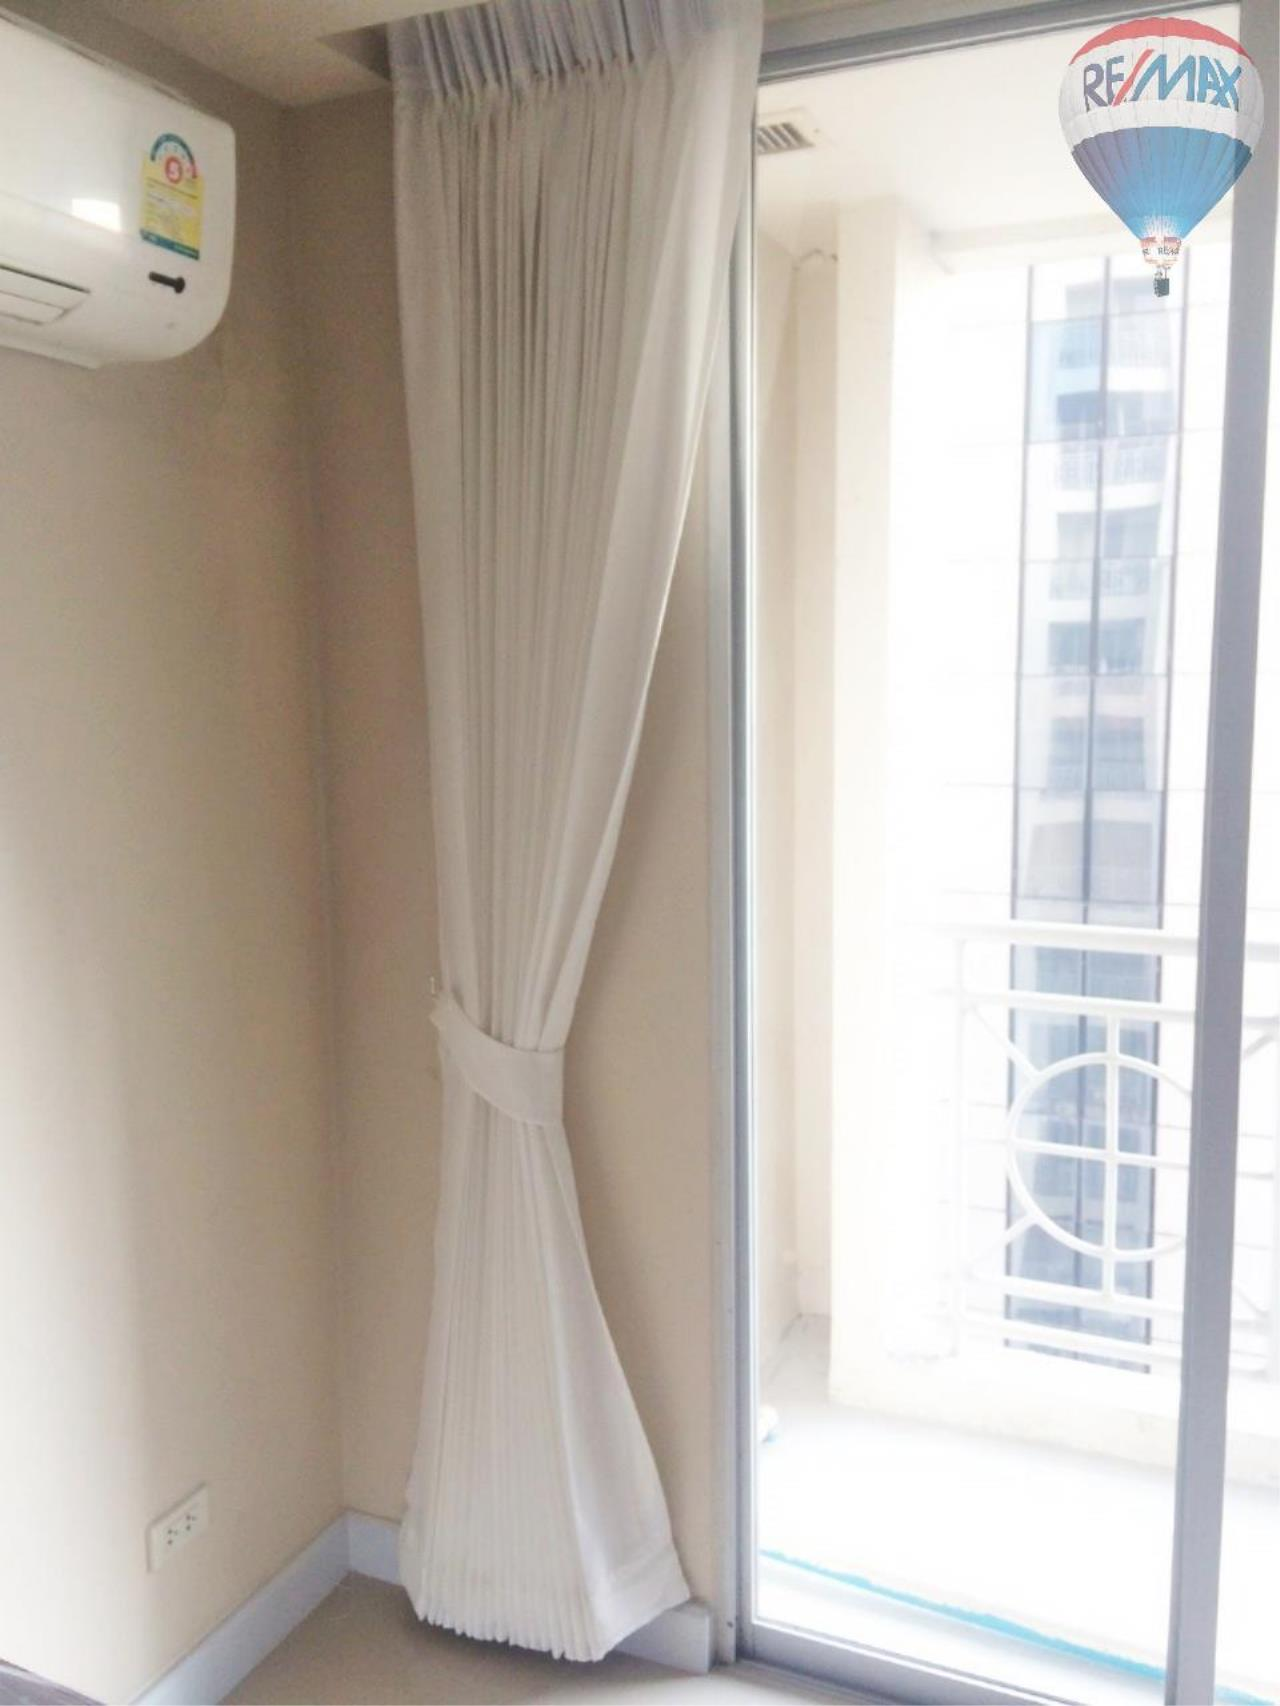 RE/MAX Properties Agency's 2 Bedroom 86 sq.m. for Rent at Asoke Place 11